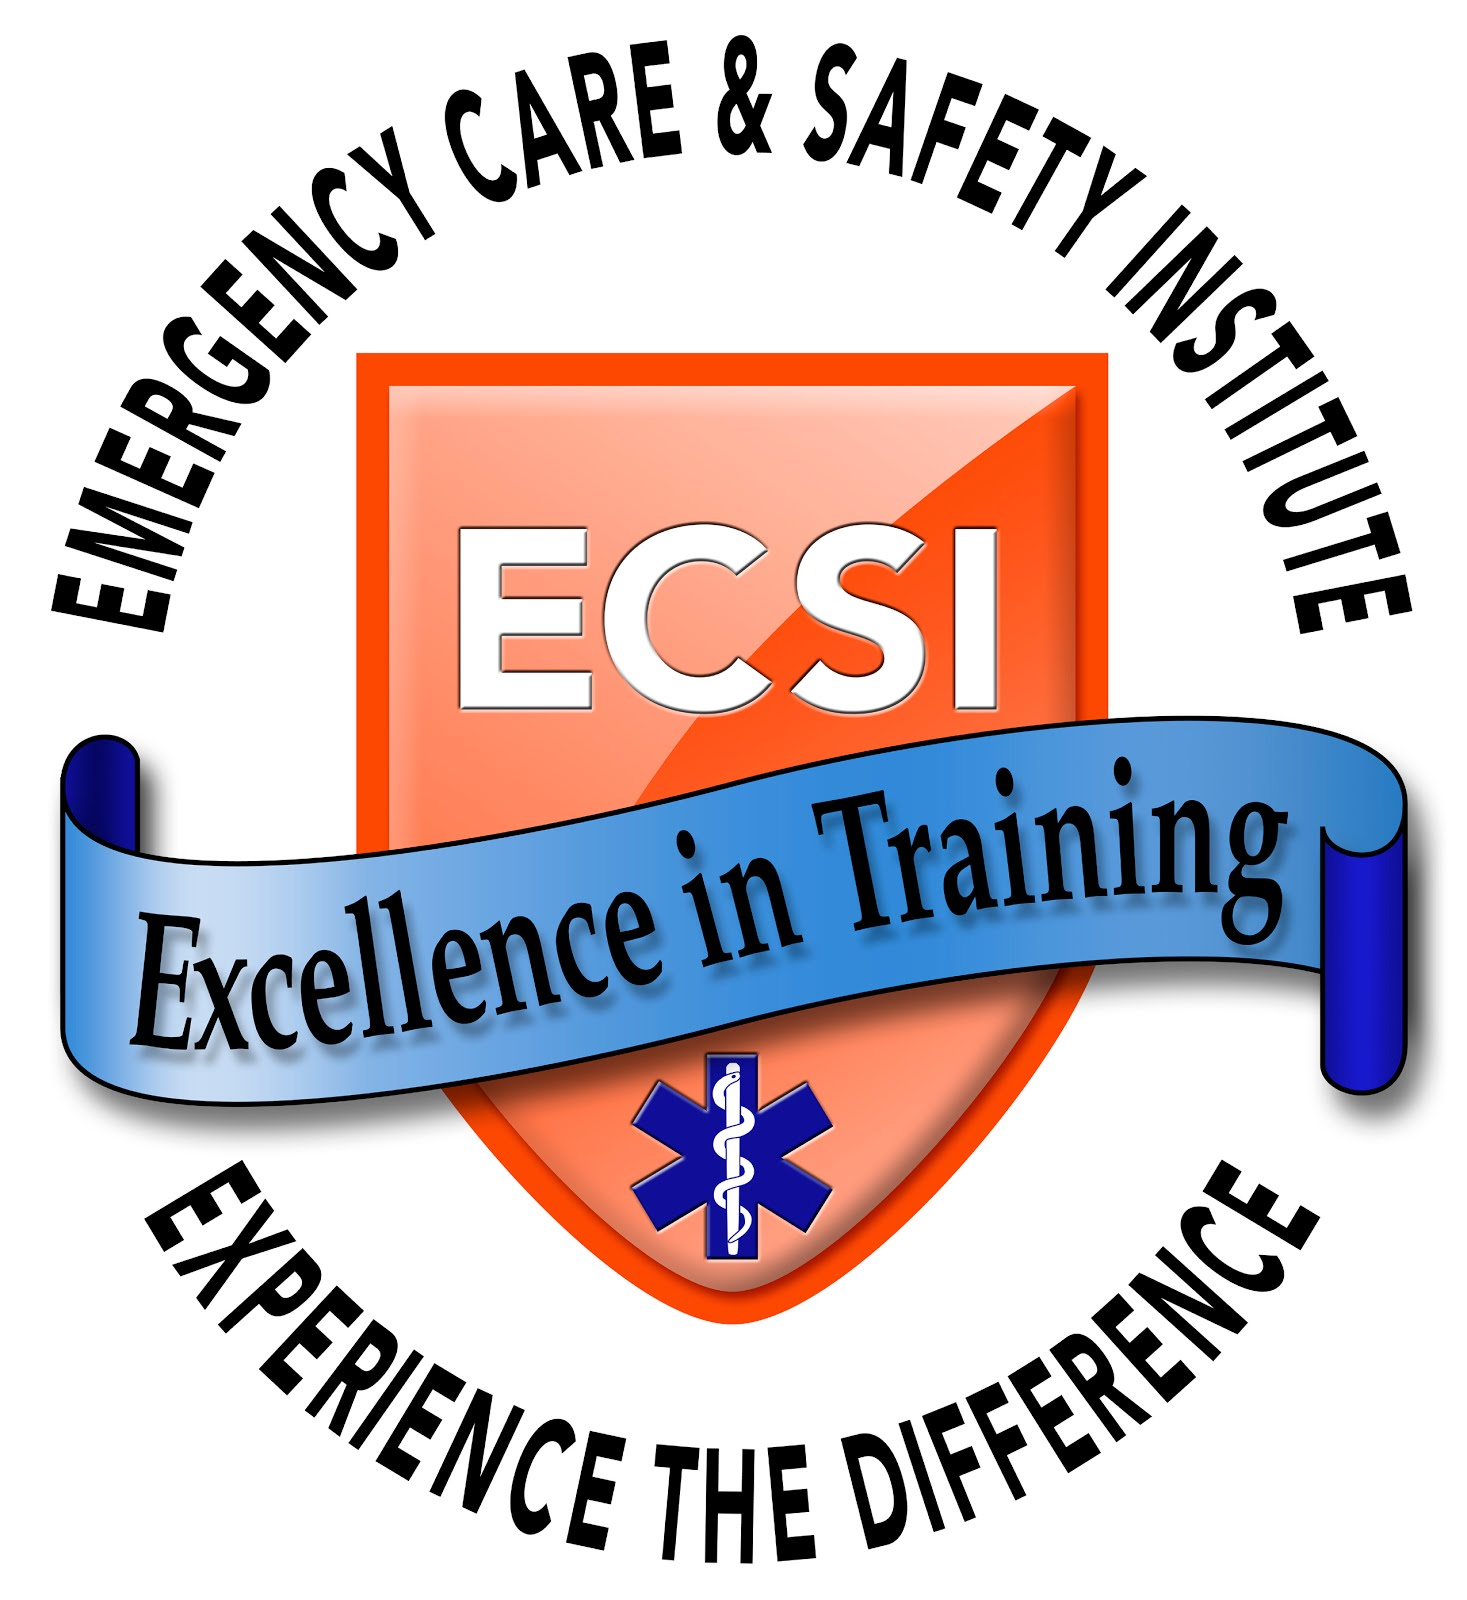 Emergency Care & Safety Institute